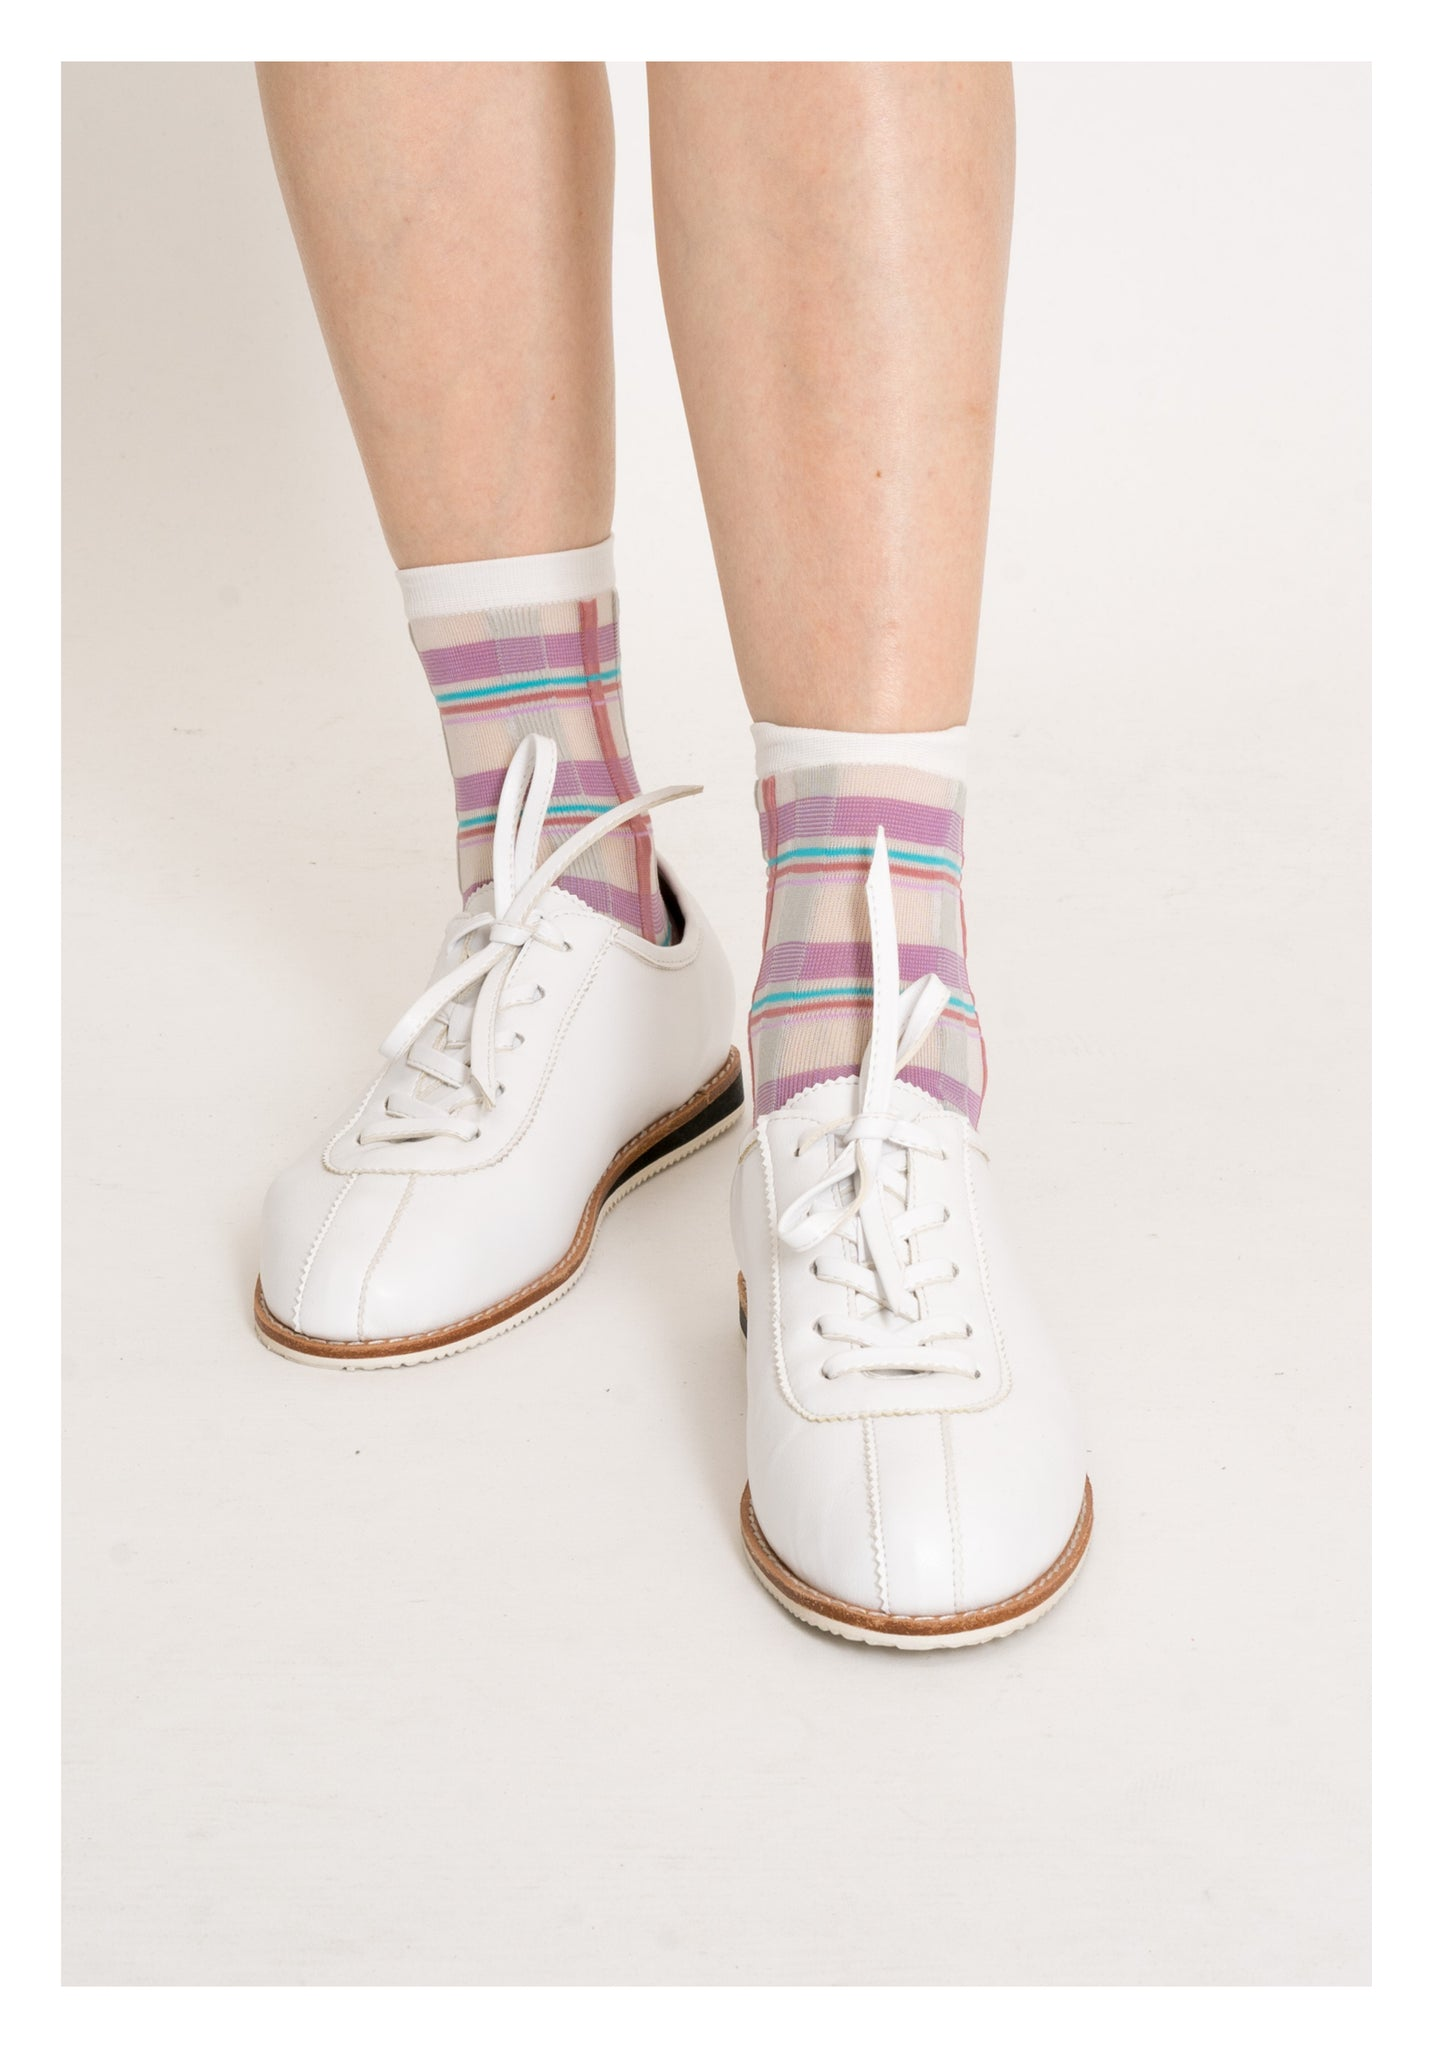 Summer Nice Colour Checker Socks Pink - whoami